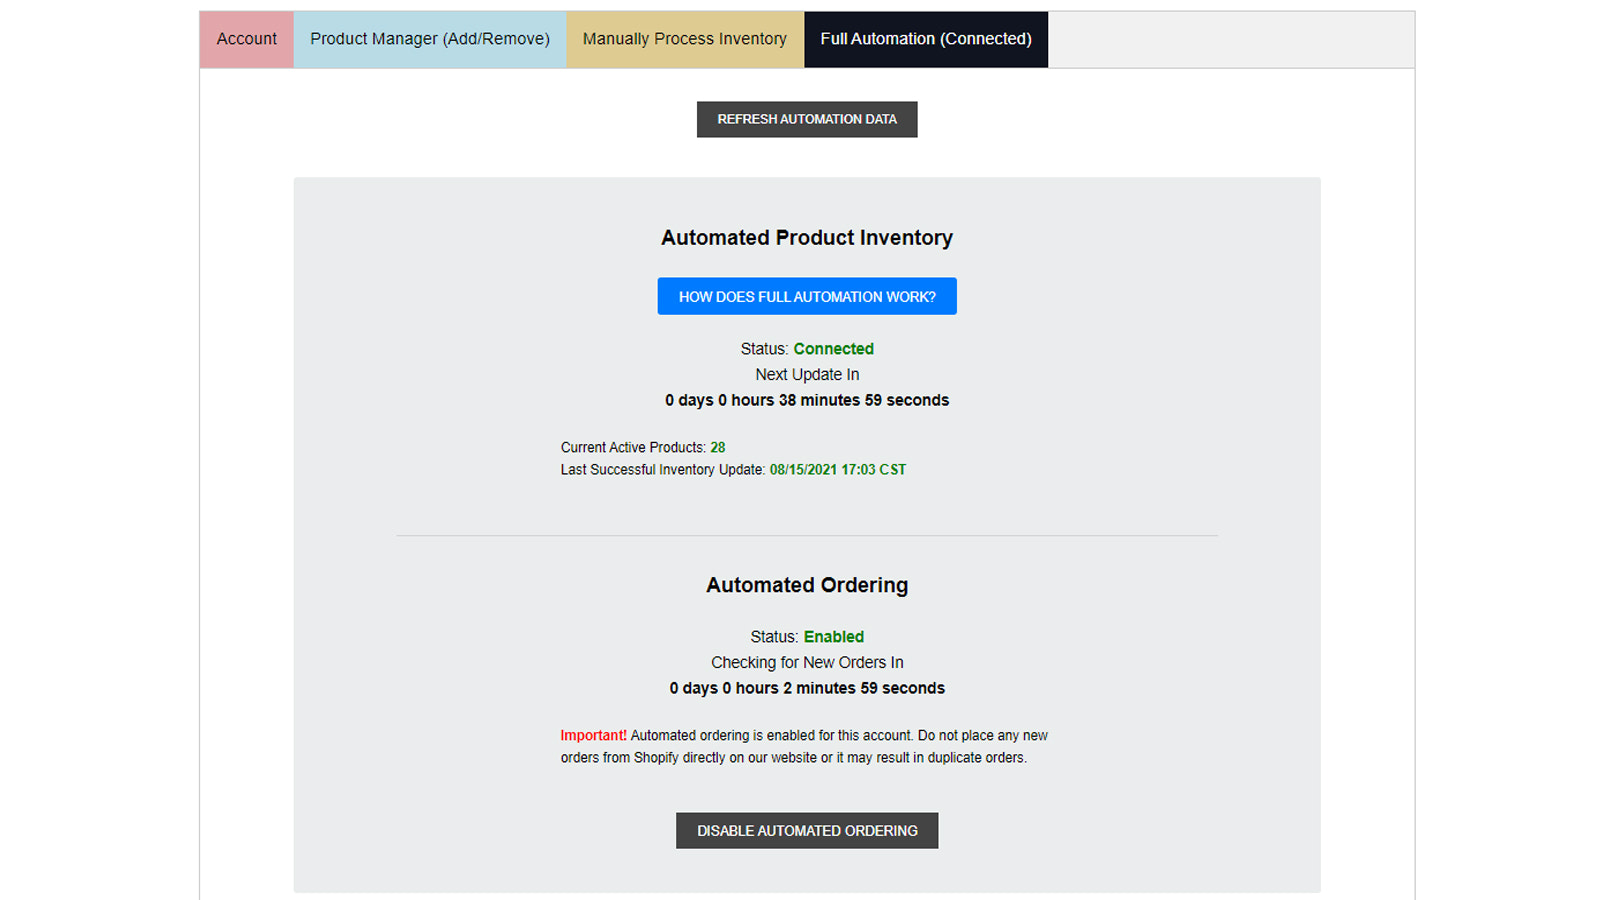 Monitor all automated activities from your dashboard